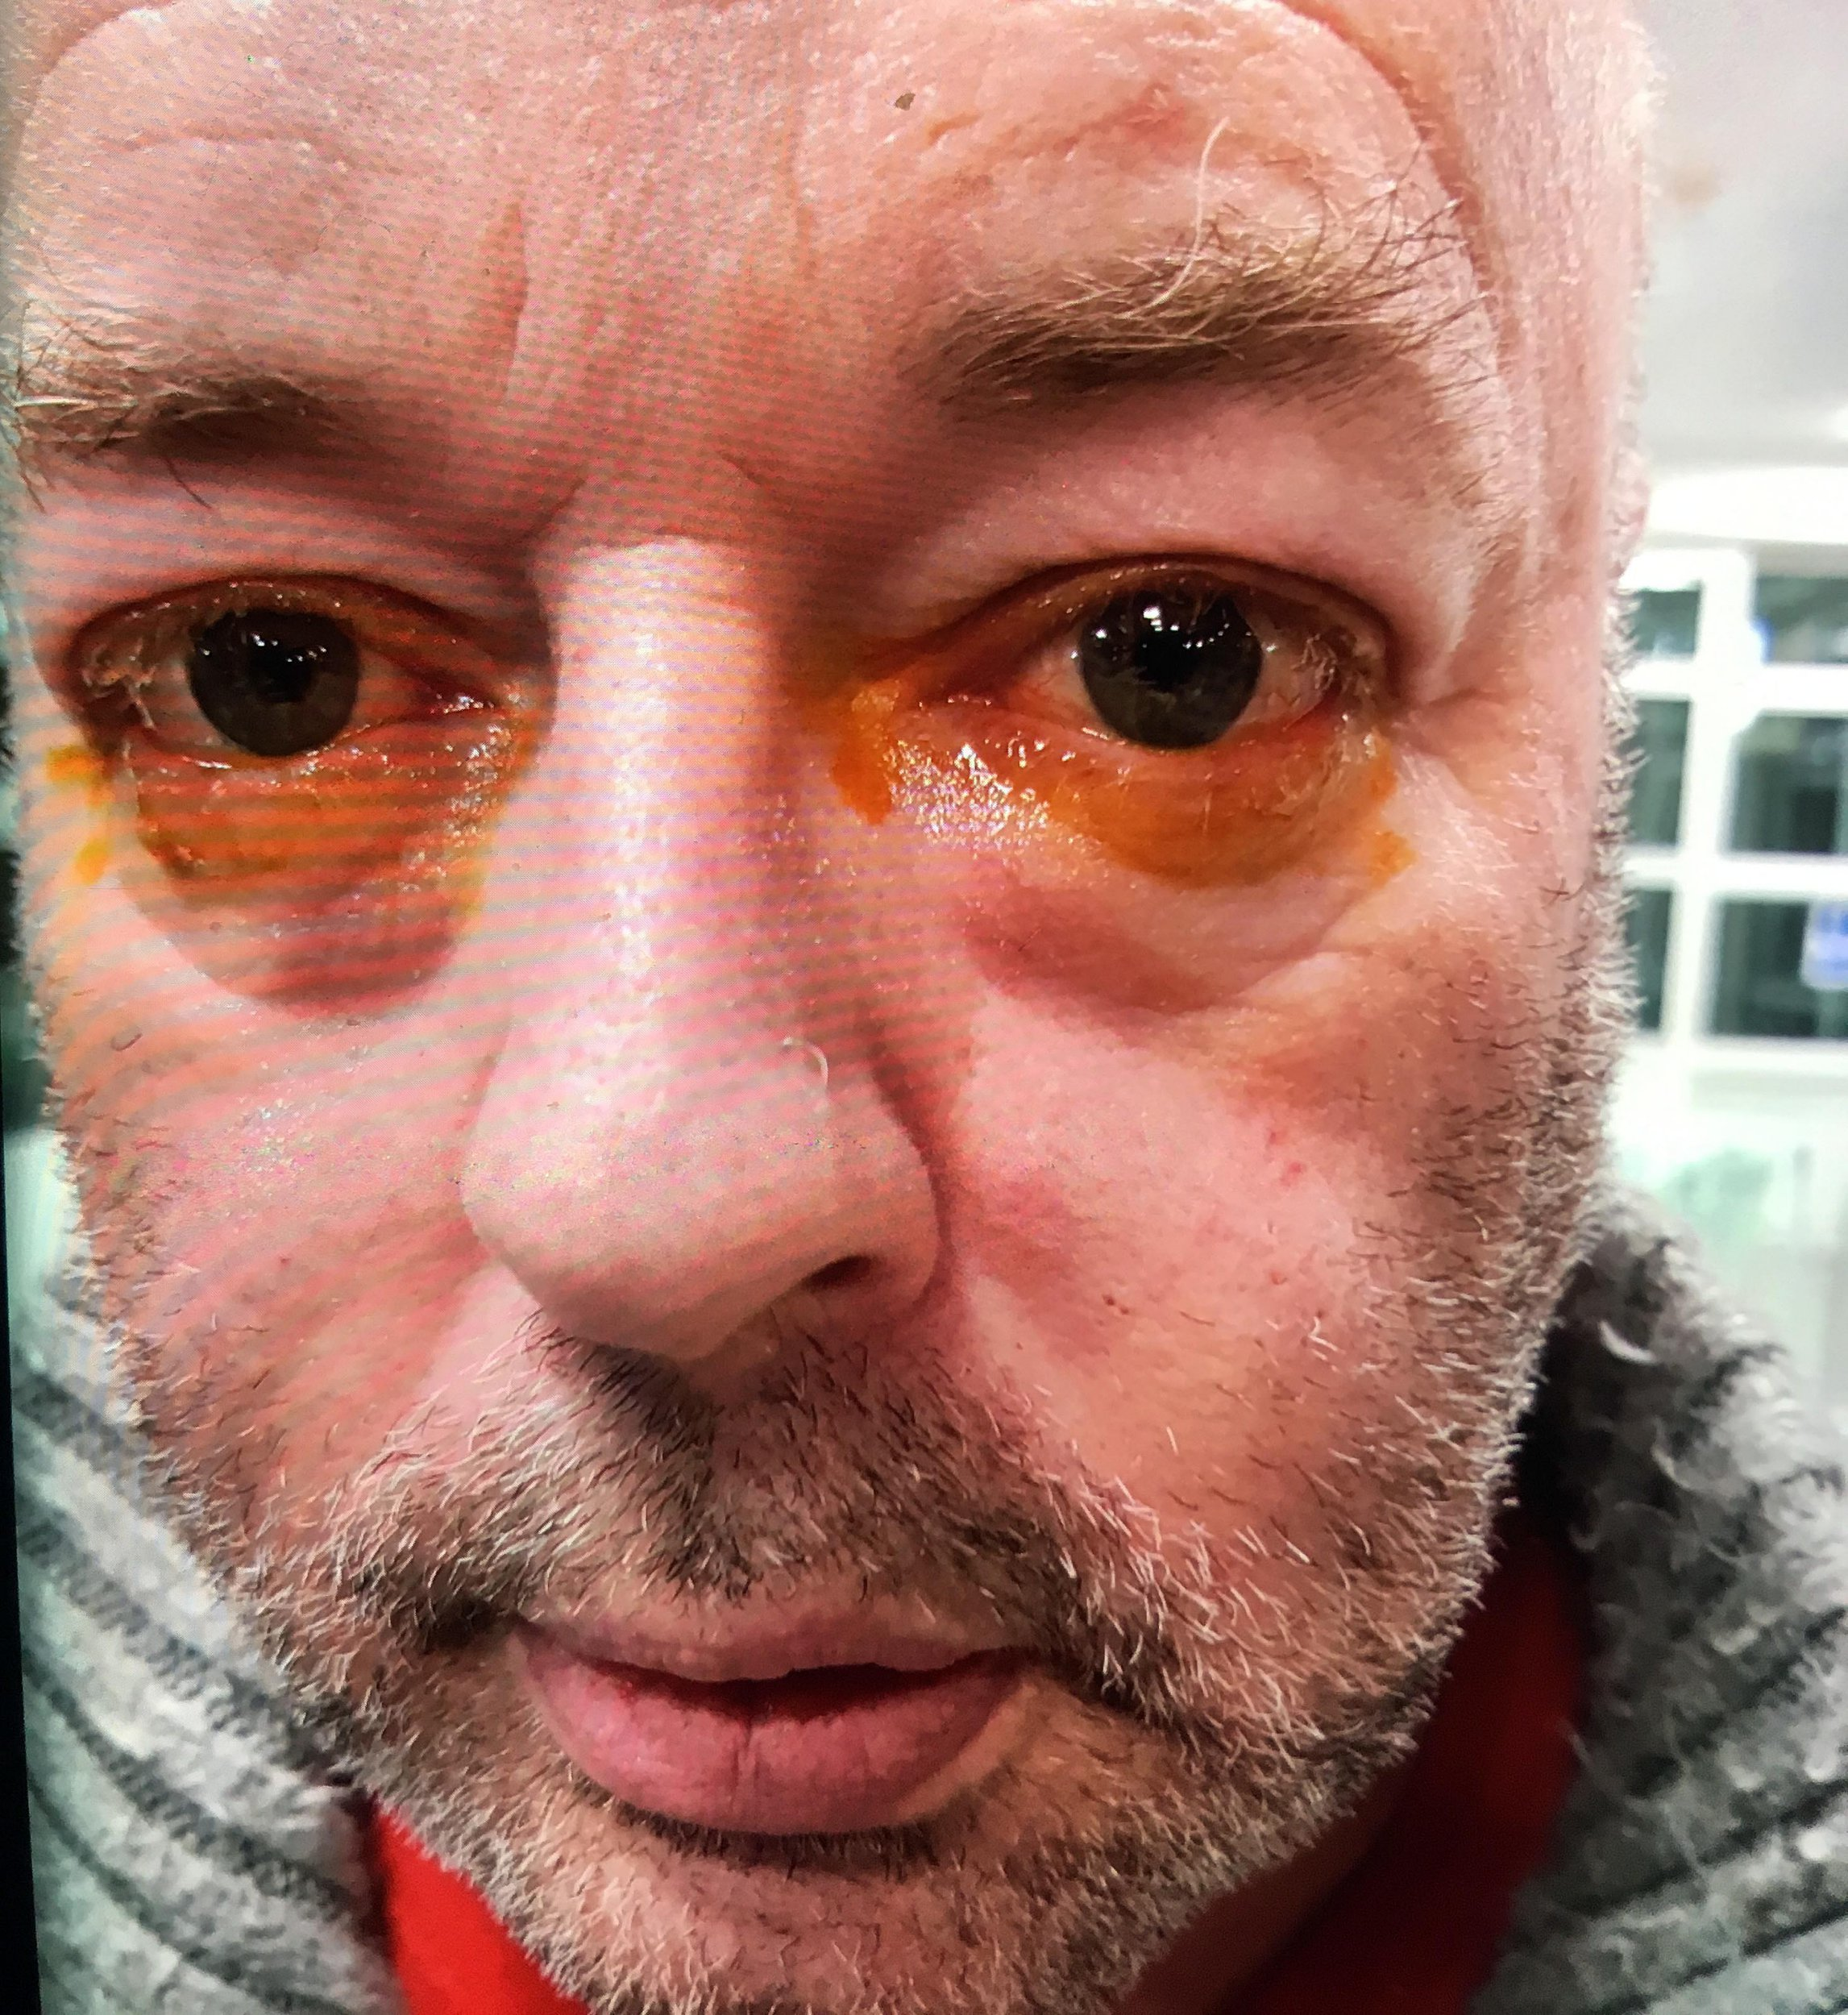 Andy Fisher from Sutton Coldfield, is pictured after claiming he had cleaning fluid sprayed in his eyes whilst complaining about his meal in the Toby Carvery in Sutton Coldfield.. Credit: BPM Media